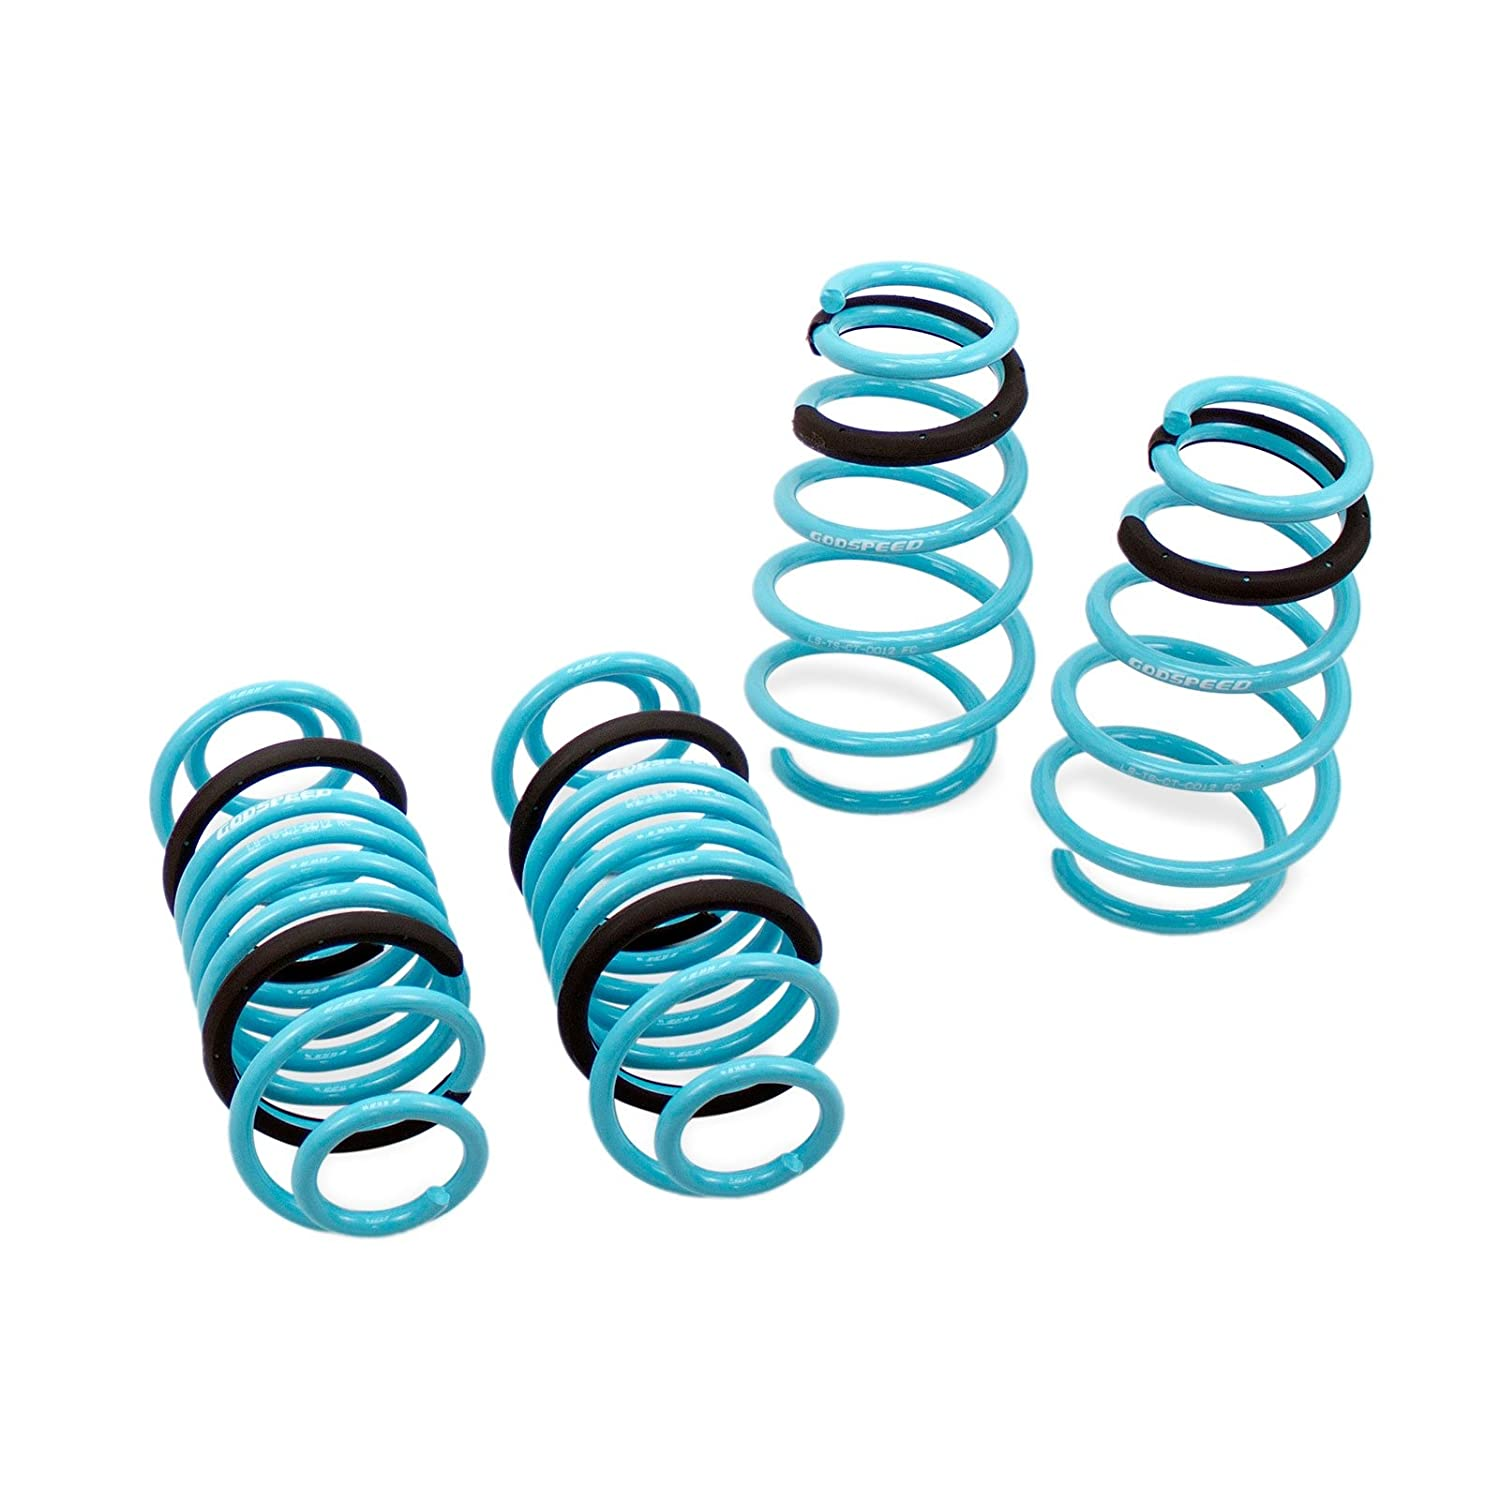 LS-TS-CT-0012 Traction-S Performance Lowering Springs for Chevy Cruze LS//LT J300 2011-15